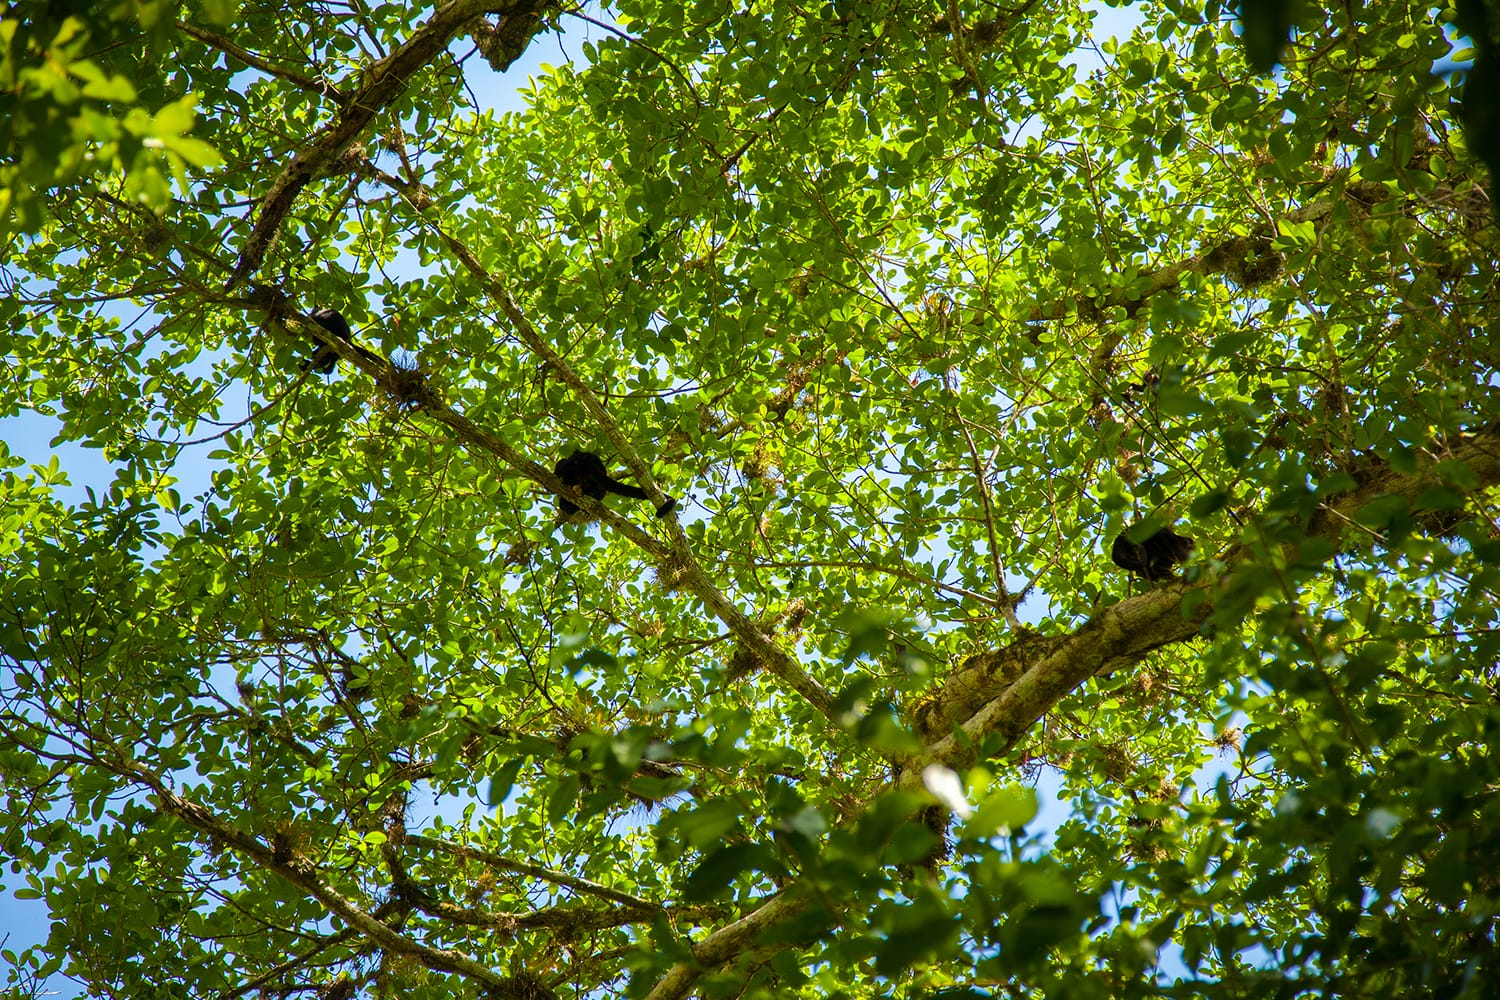 A family of spider monkey on the tropical forest in Tikal, Peten Guatemala